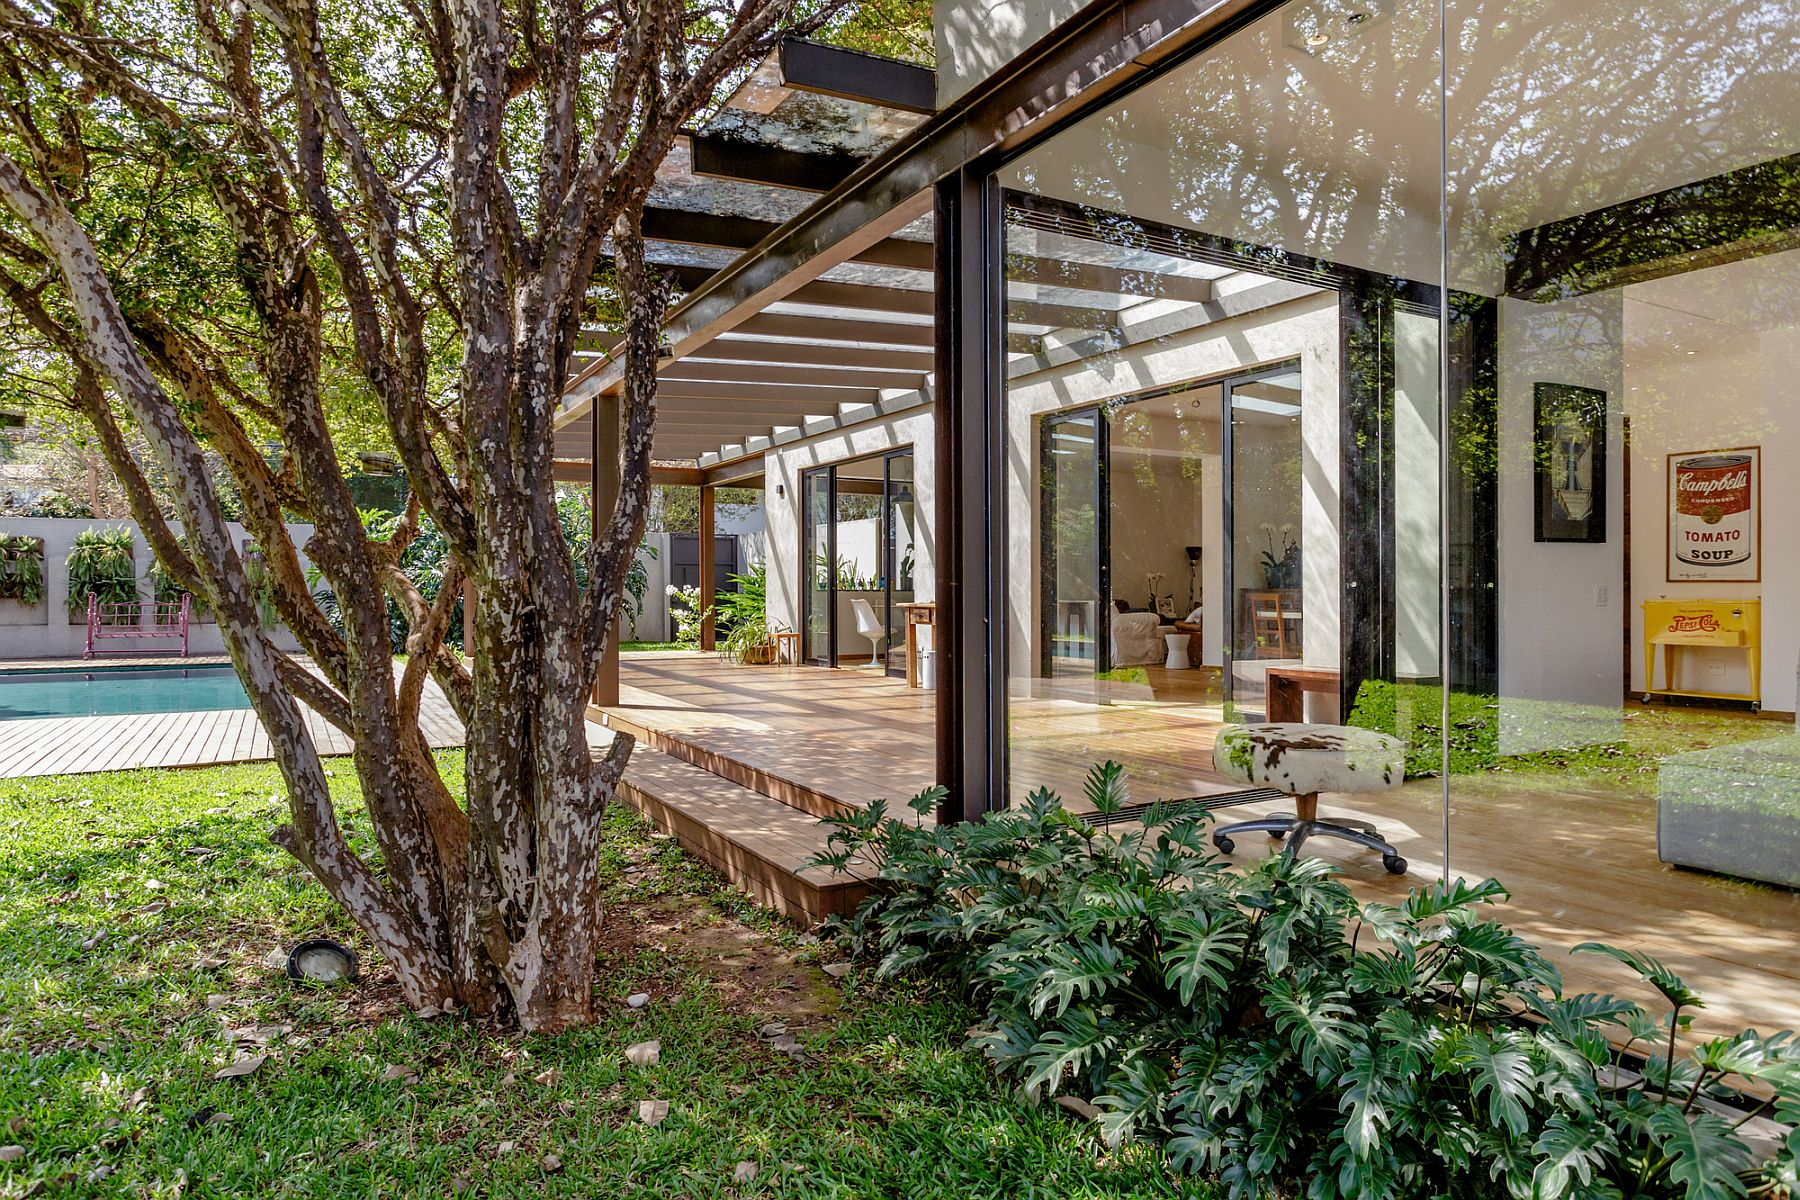 Steel structure of the house along with glass walls blurs the boundary between the interior and the world outside